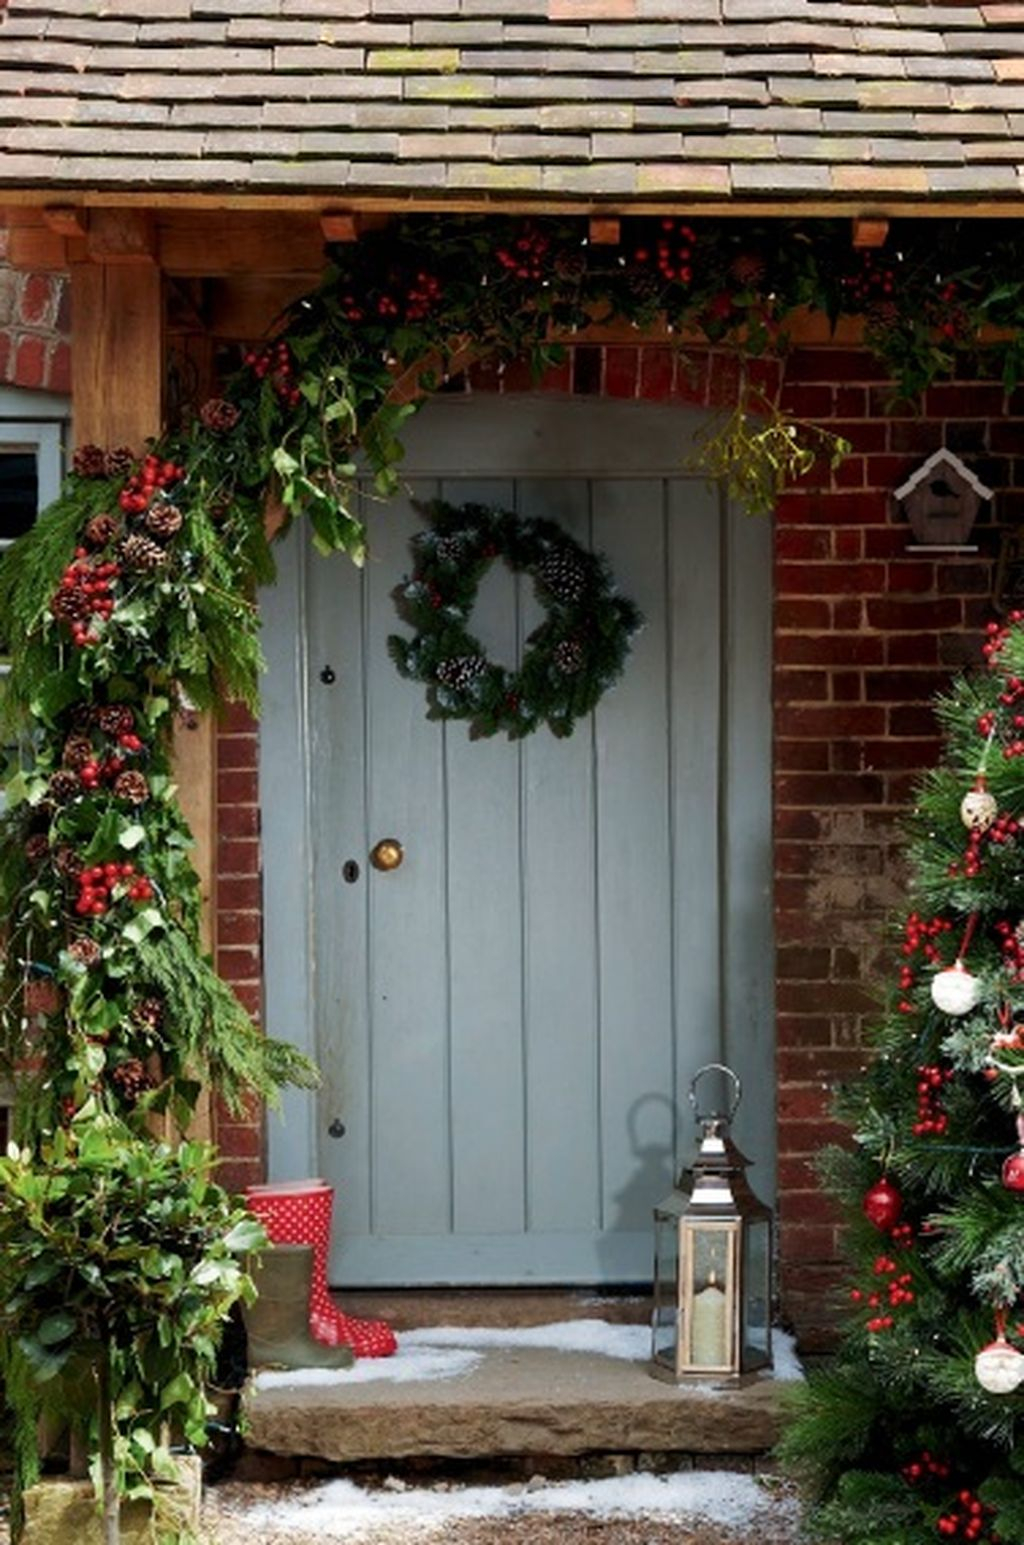 52 Beautiful Front Door Decorations And Designs Ideas: Simple But Beautiful Front Door Christmas Decoration Ideas 62